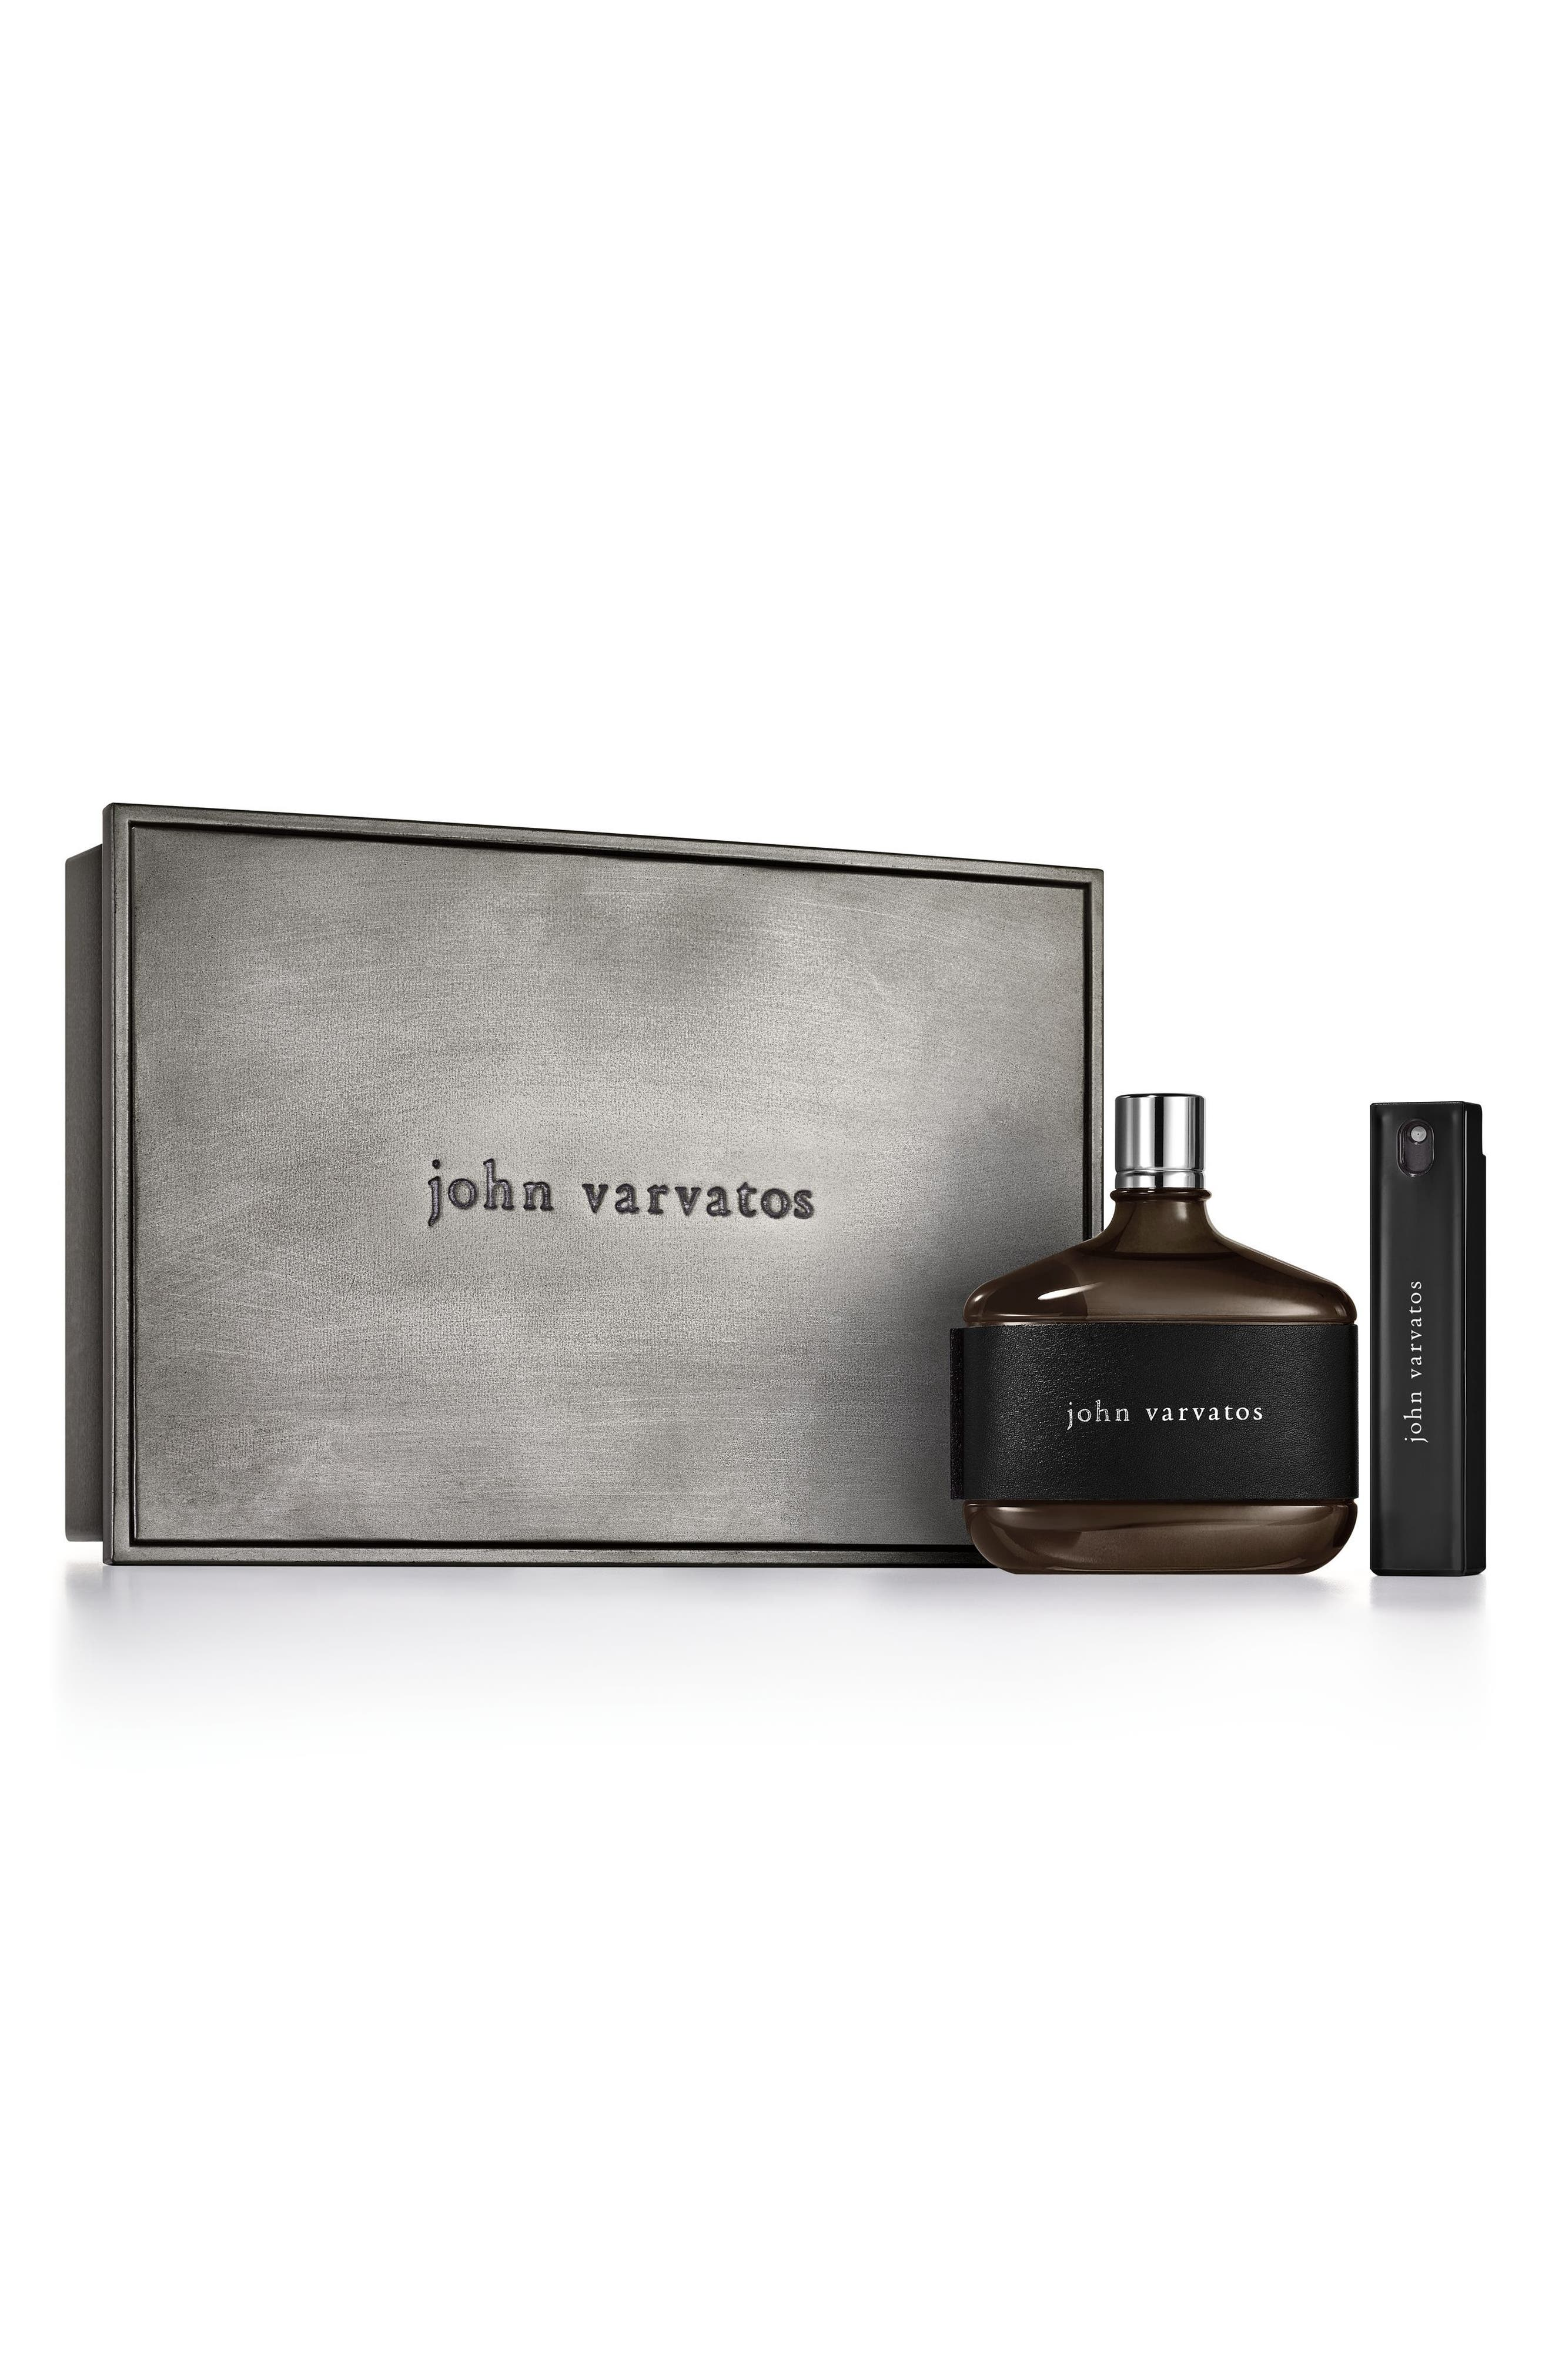 John Varvatos Heritage Set ($119 Value)